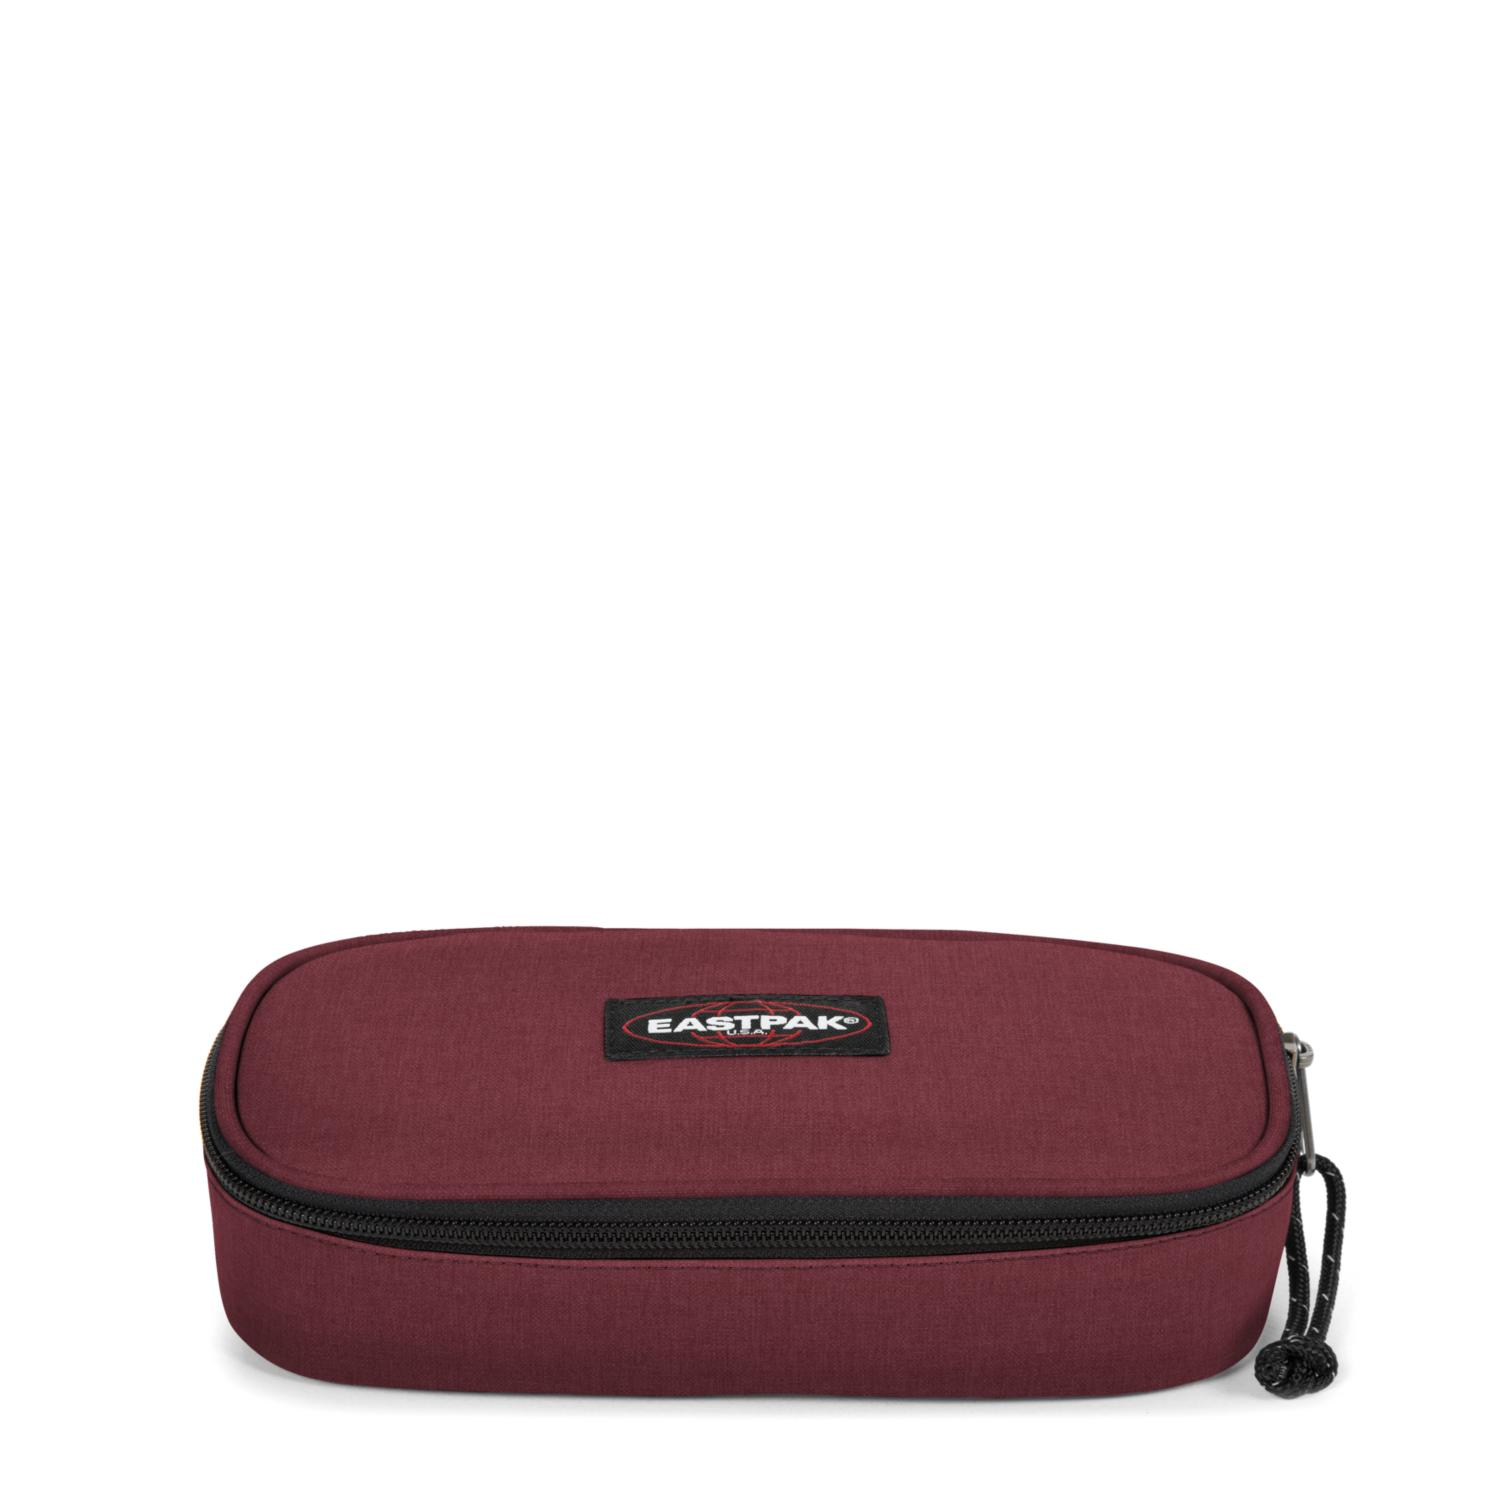 Eastpak Etui Oval Single Design Crafty Wine (bordeaux rot)